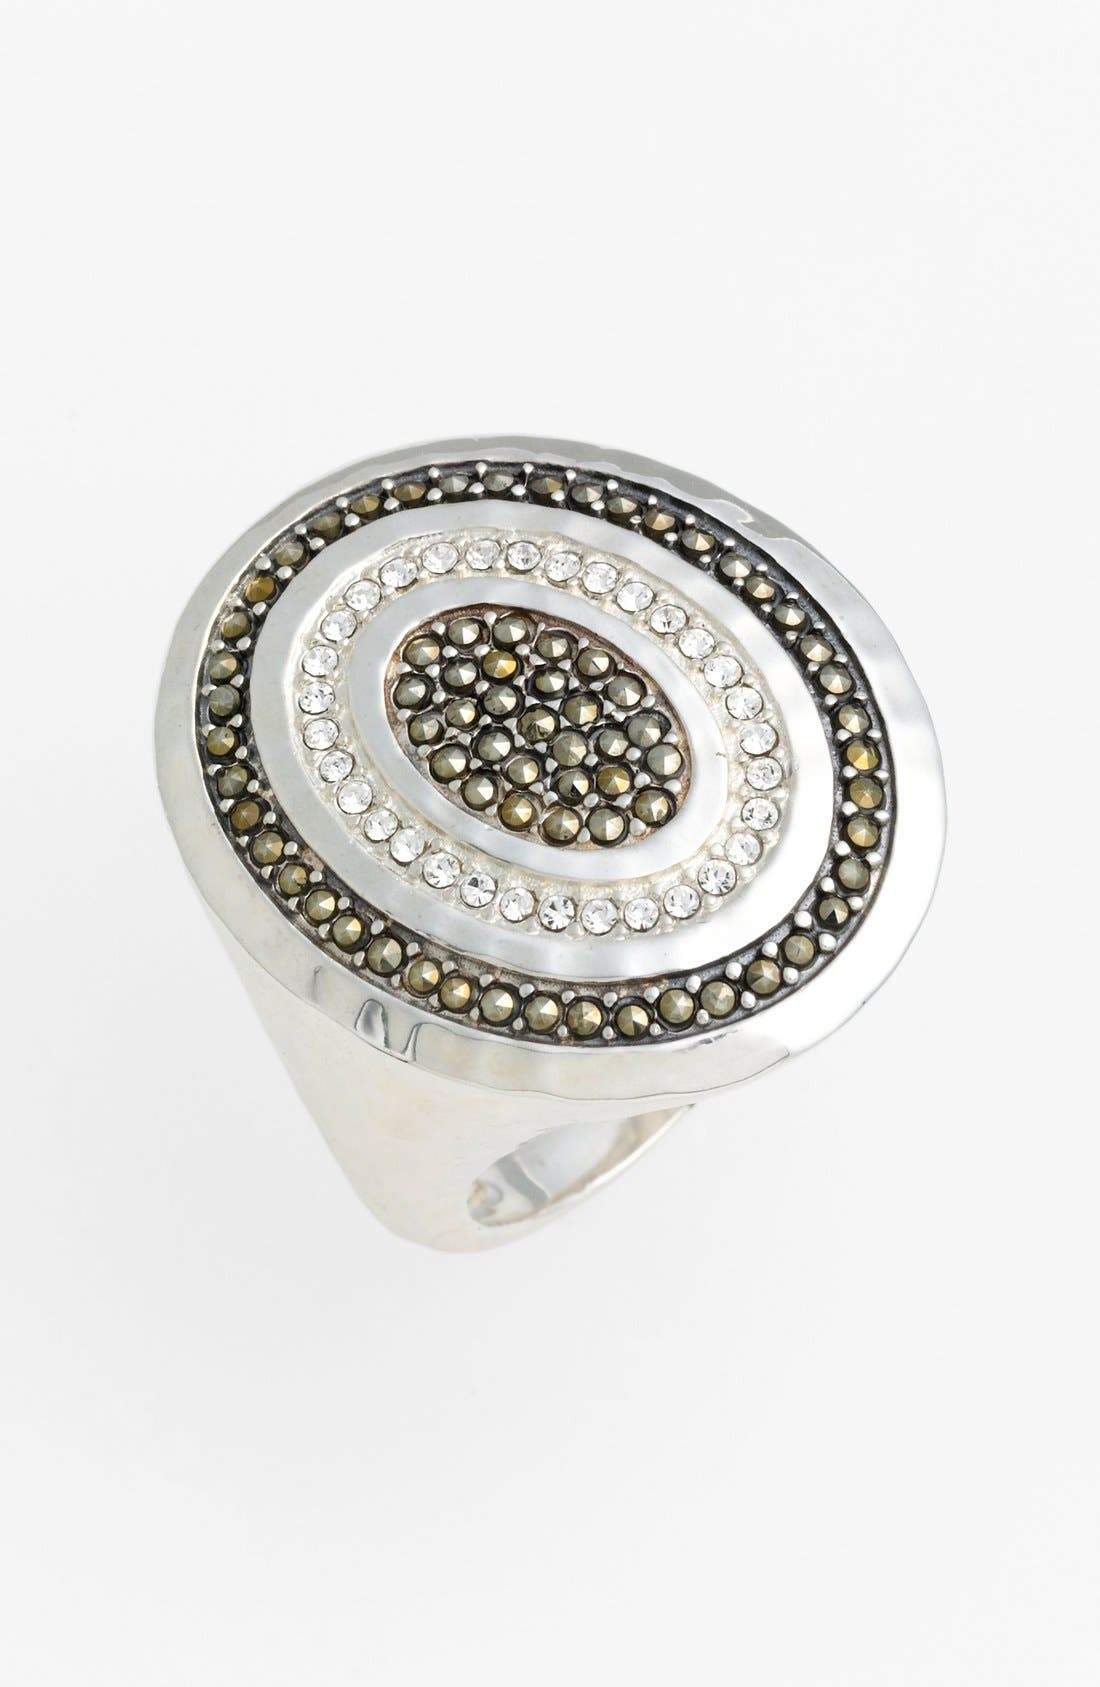 Alternate Image 1 Selected - Judith Jack 'Halo' Oval Cocktail Ring